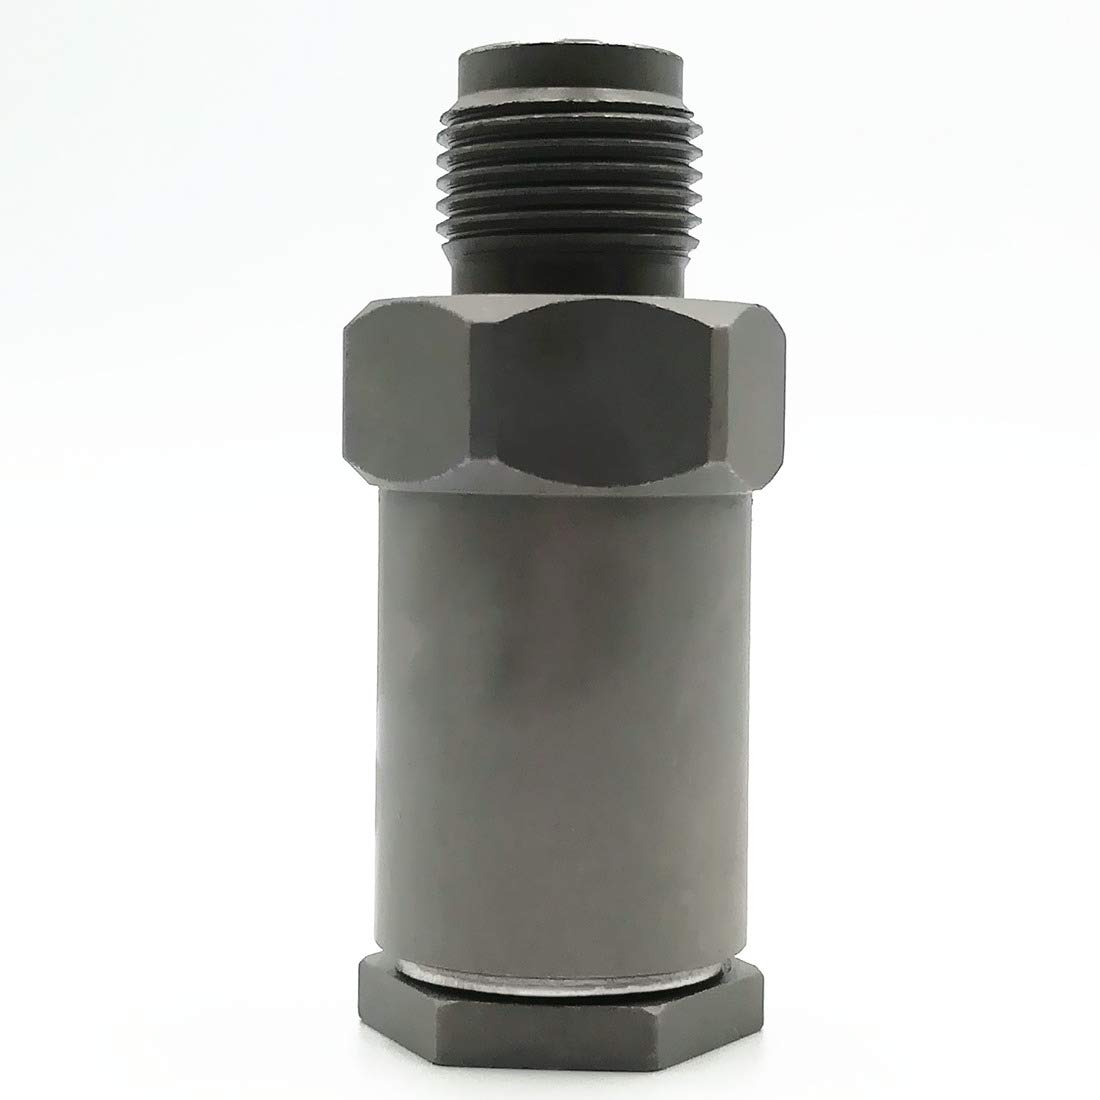 3963808 Pressure Relief Valve for Dodge Cummins 5.9 Diesel 2003-2007 Replace Fuel Injector Common Rail Fuel Plug 3947799